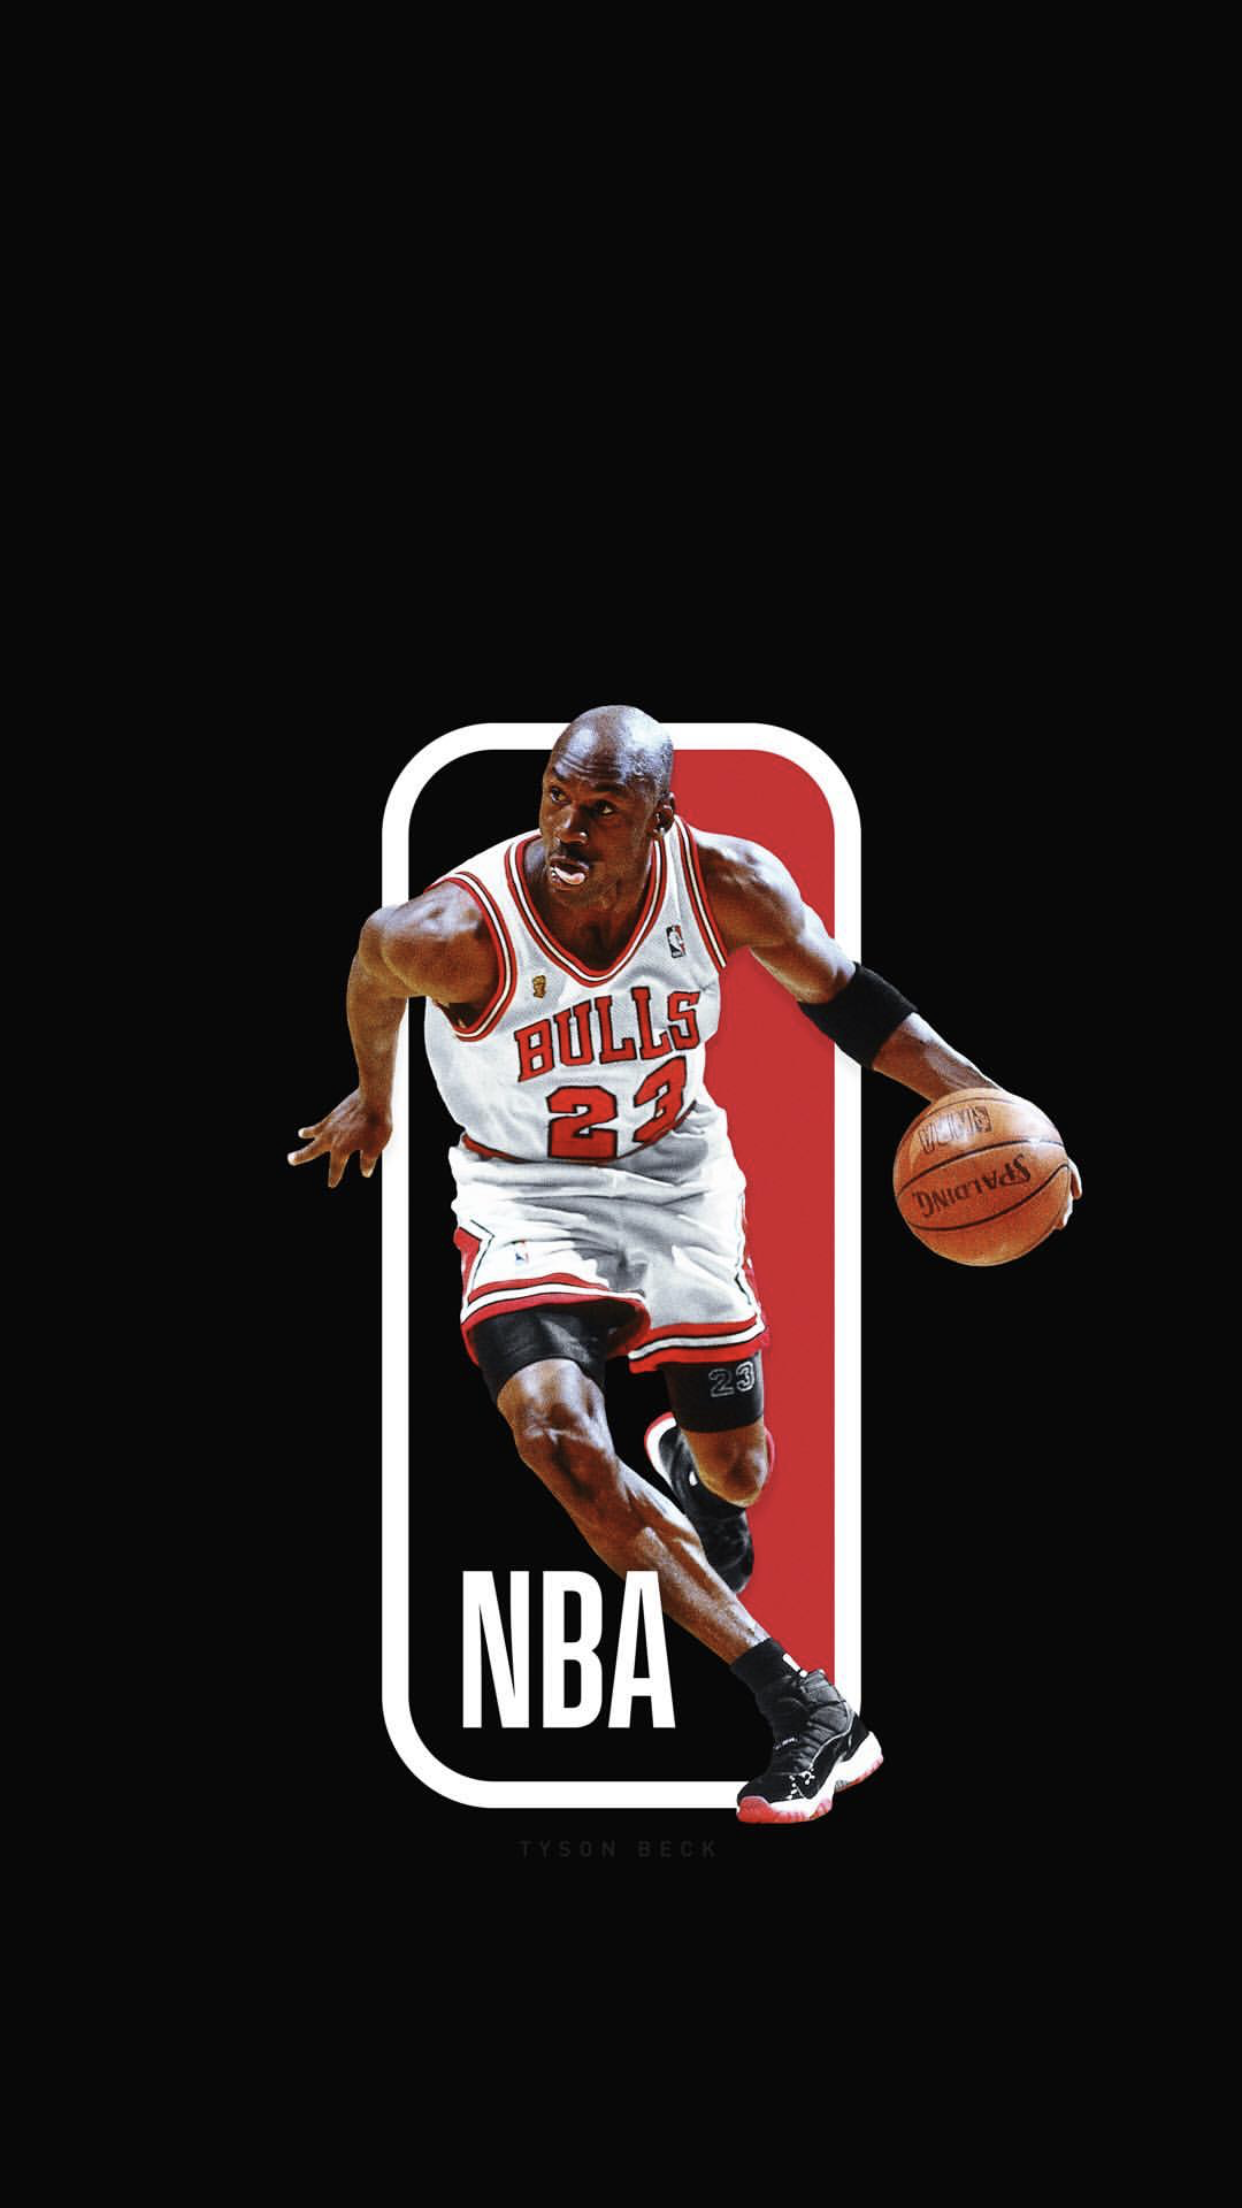 Pin By Cesar On Sports Basketball Quotes Michael Jordan Michael Jordan Basketball Michael Jordan Pictures